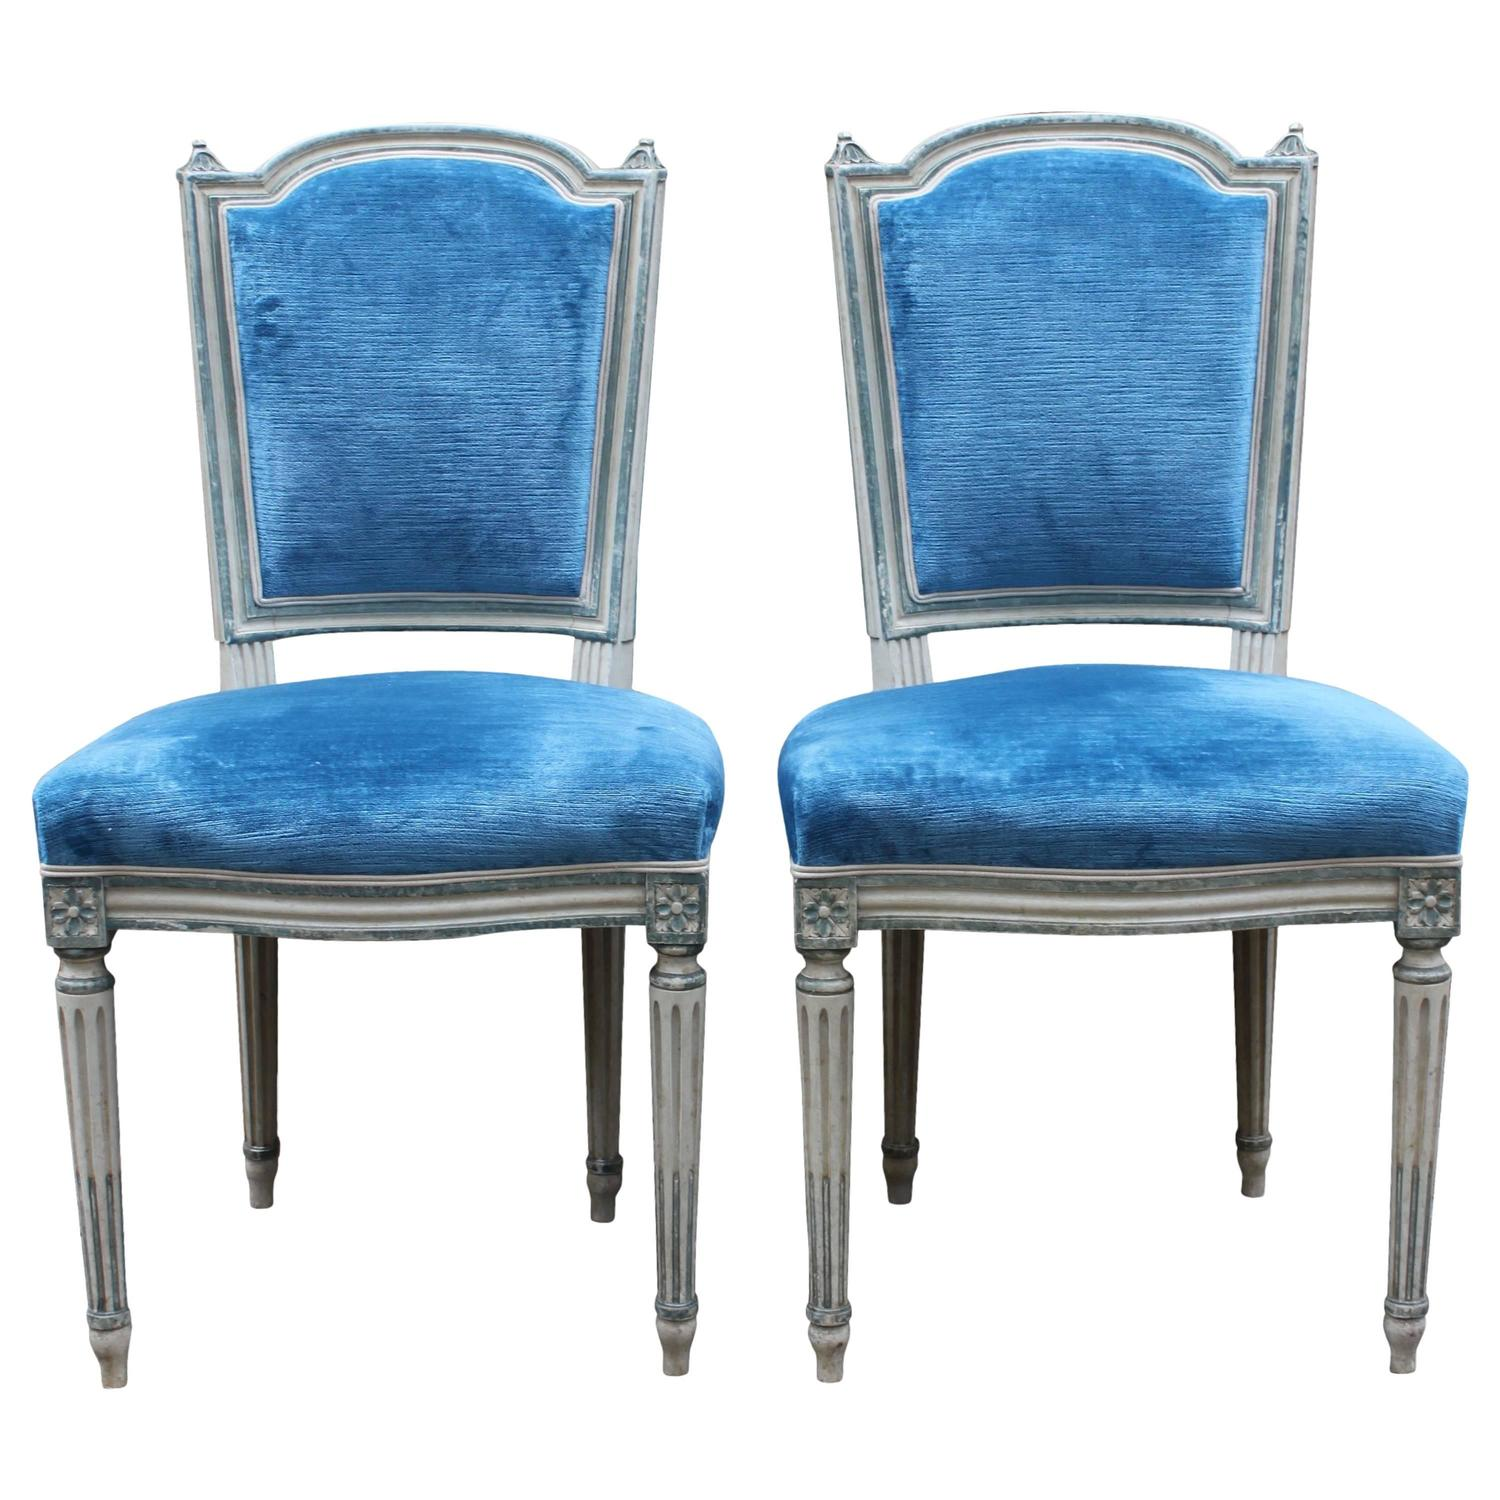 Pair of french blue and white painted louis xvi style dining side chairs 1940s for sale at 1stdibs